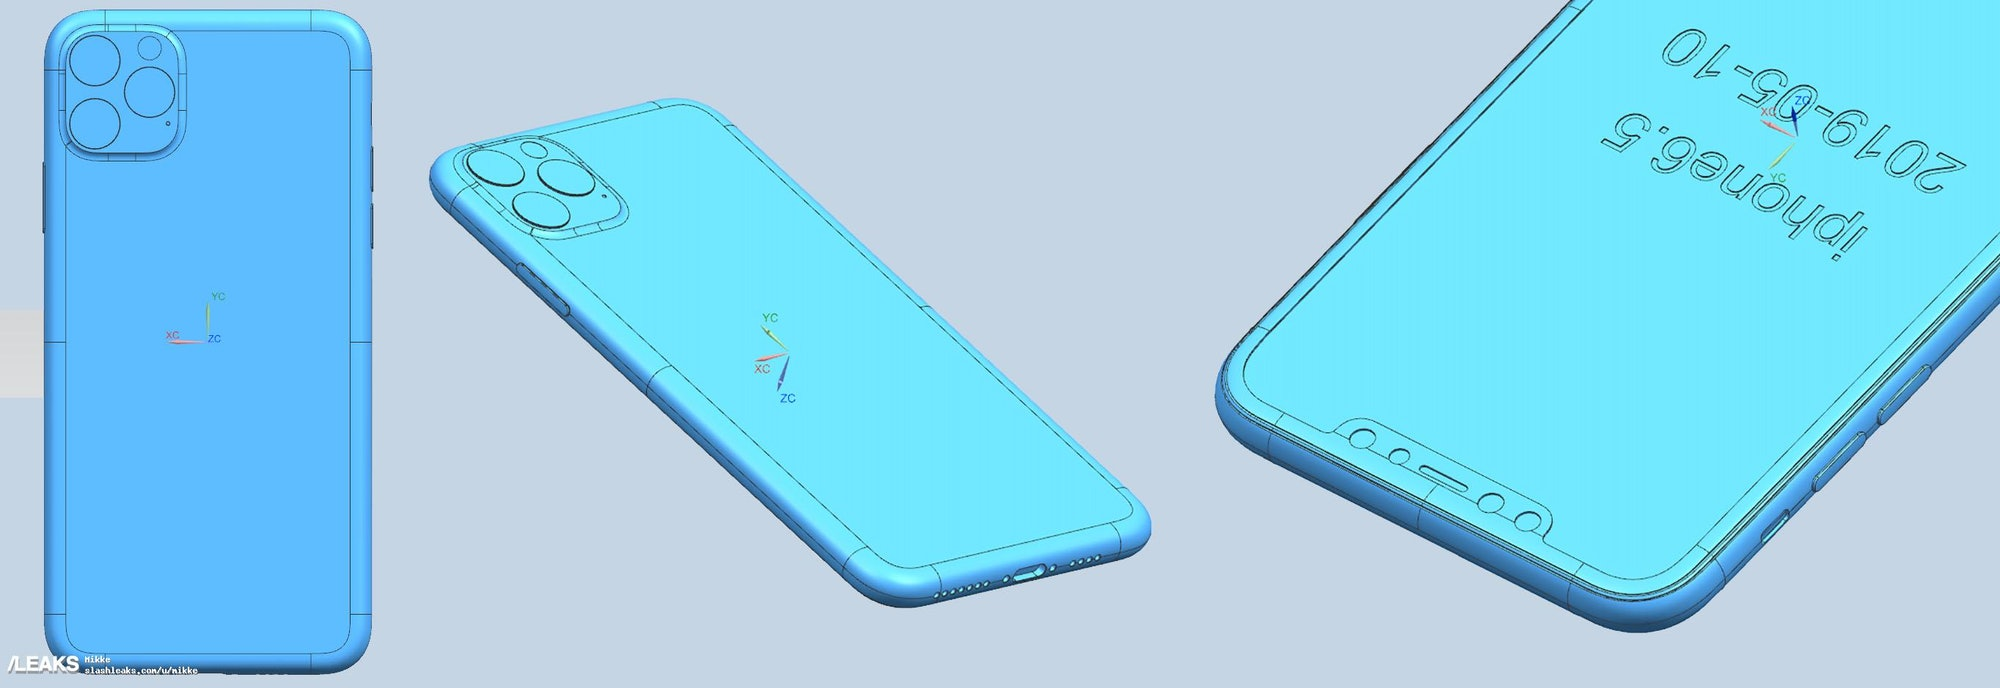 iphone 11 leaks chassis